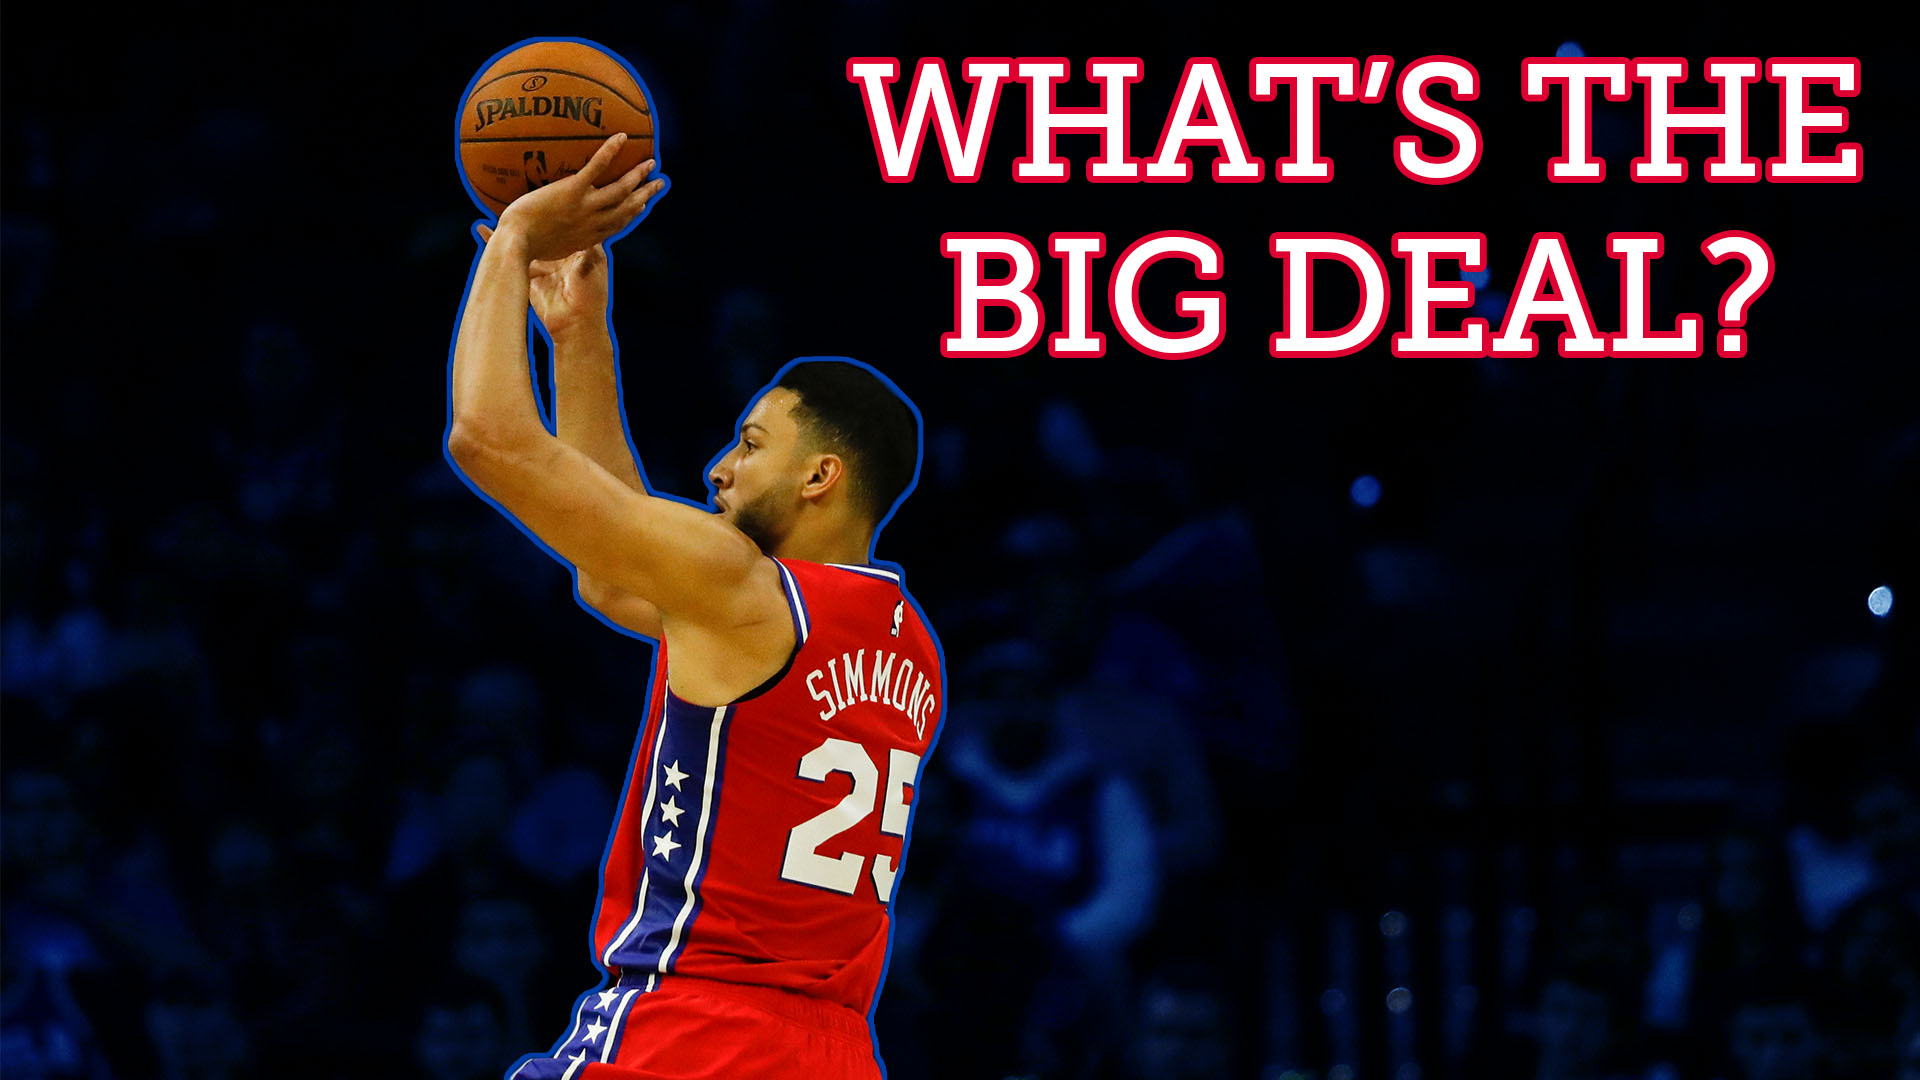 What's the big deal? Four wacky Ben Simmons 3-point stats